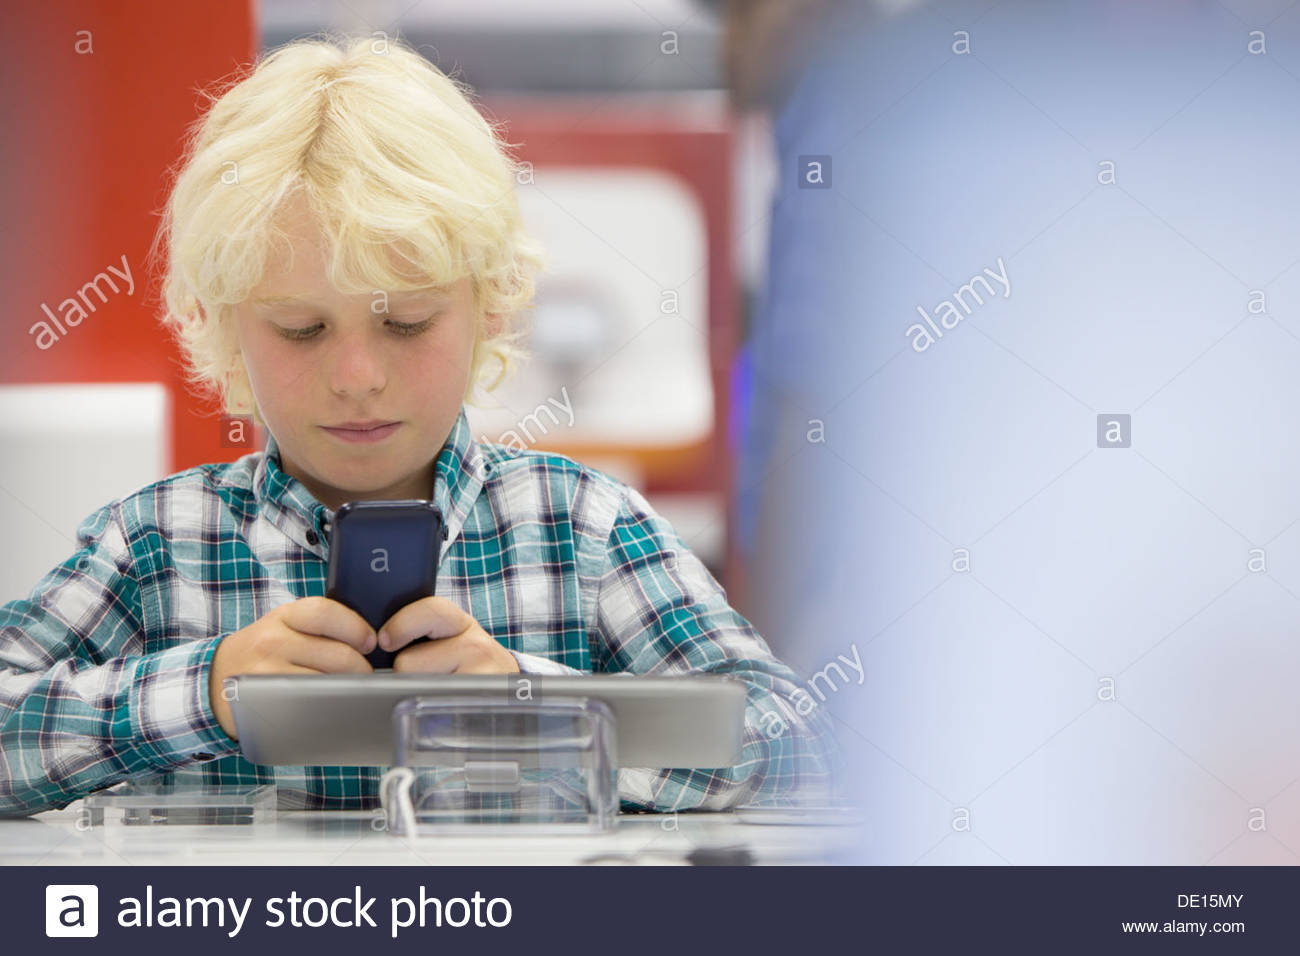 Boy looking at cell phone in electronics store Photo Stock